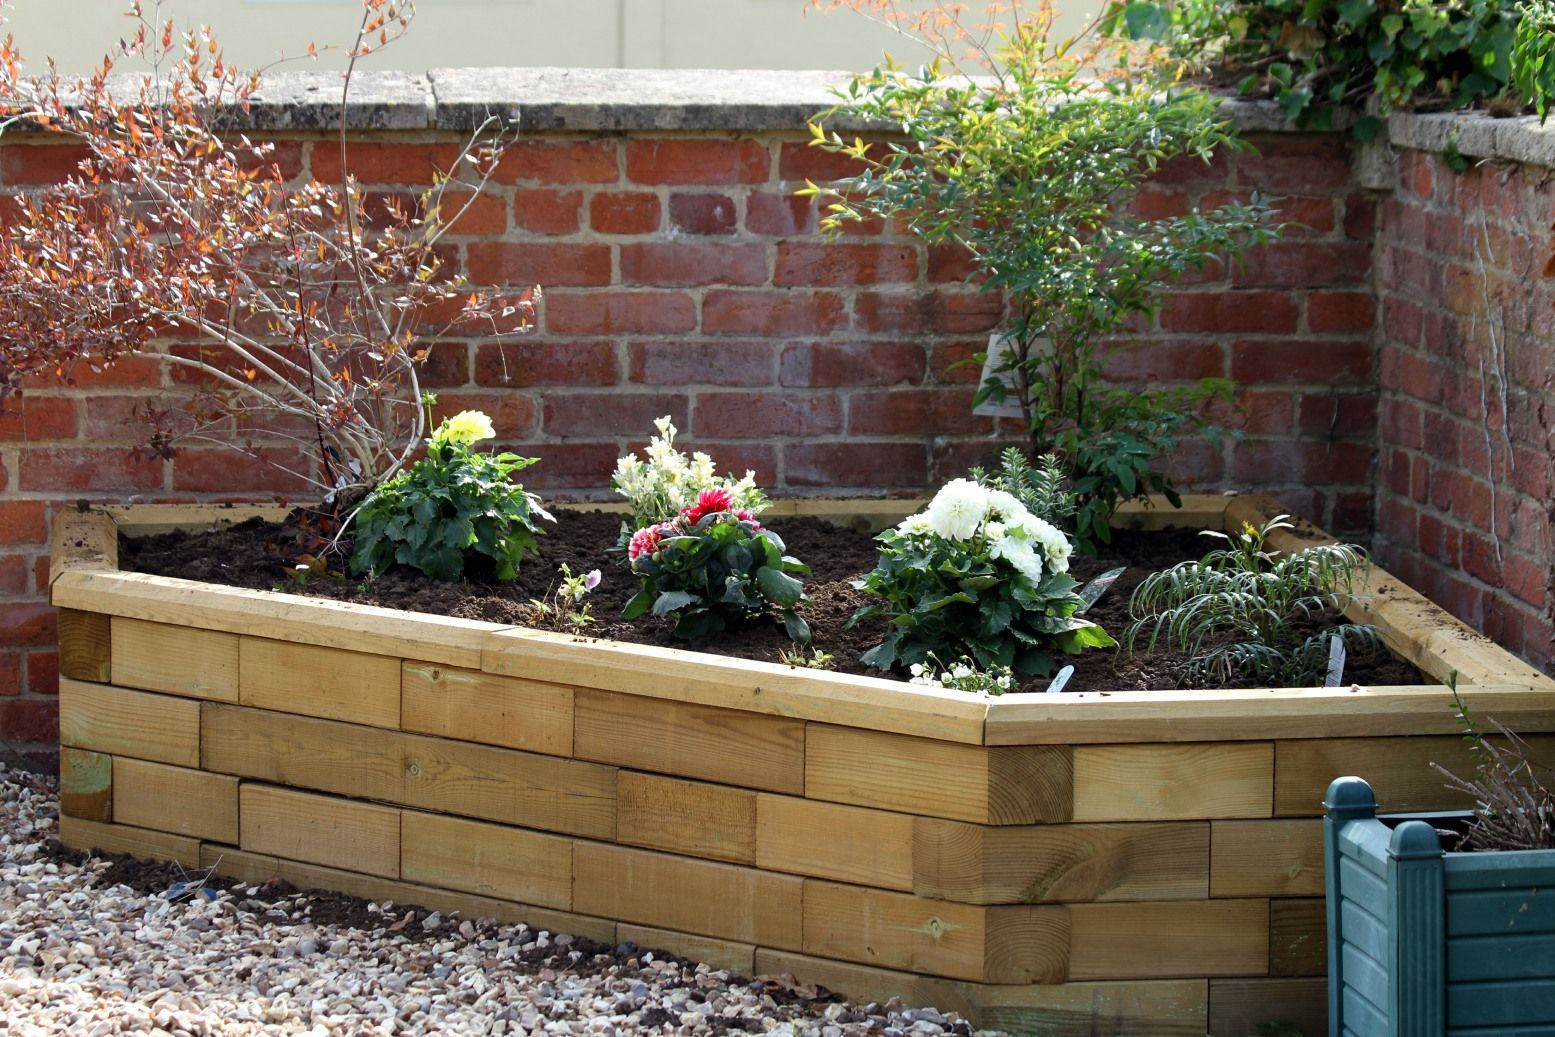 L Shaped Raised Garden Beds and Wooden Corner Bed DIY kits